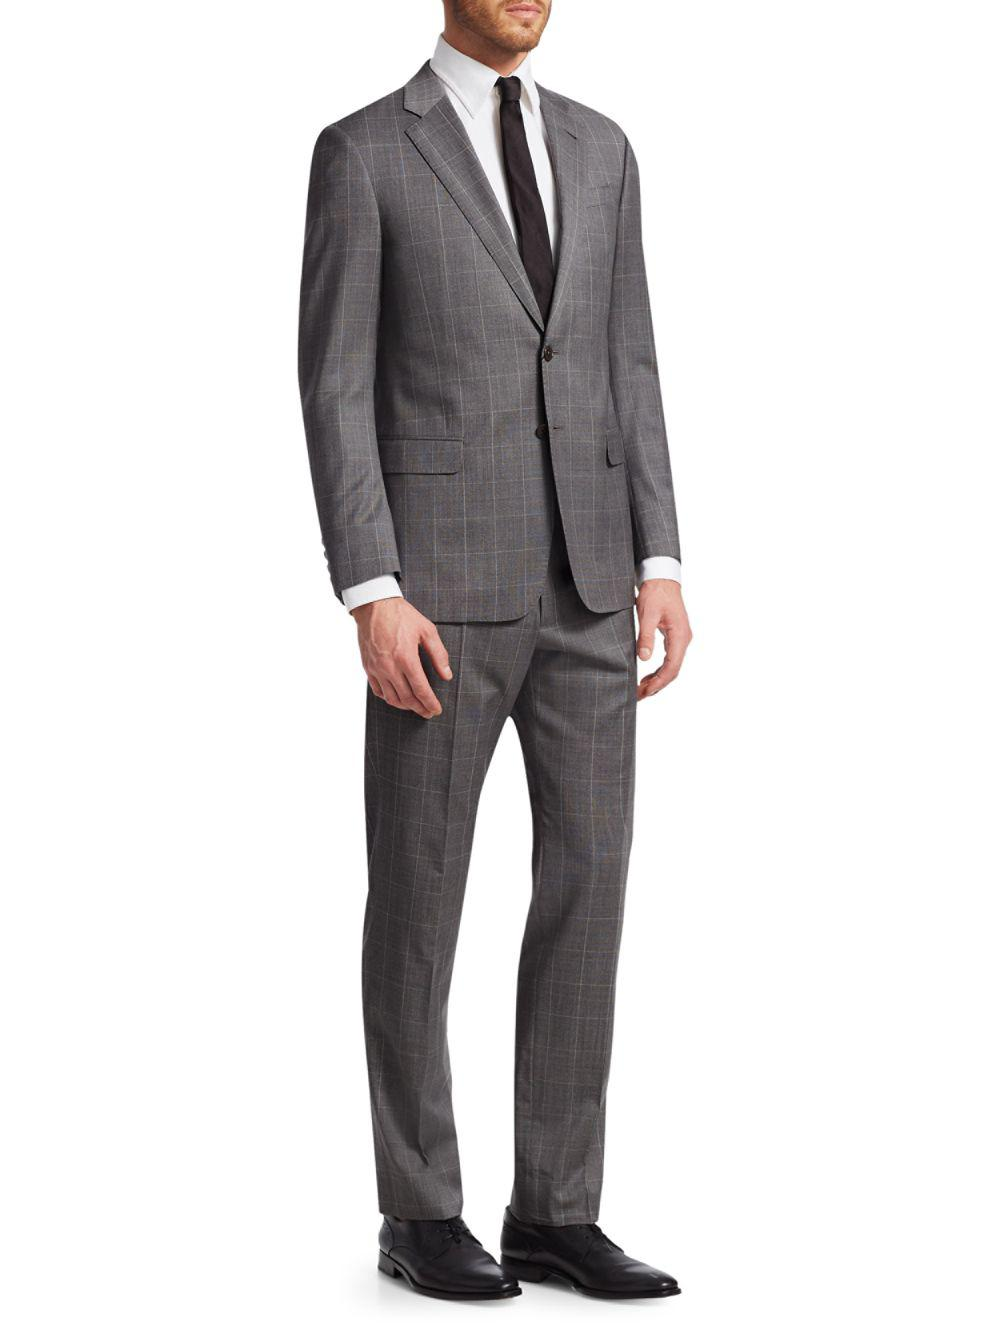 7d8140c5c2f Lyst - Giorgio Armani Modern Fit Windowpane Wool Suit in Gray for ...